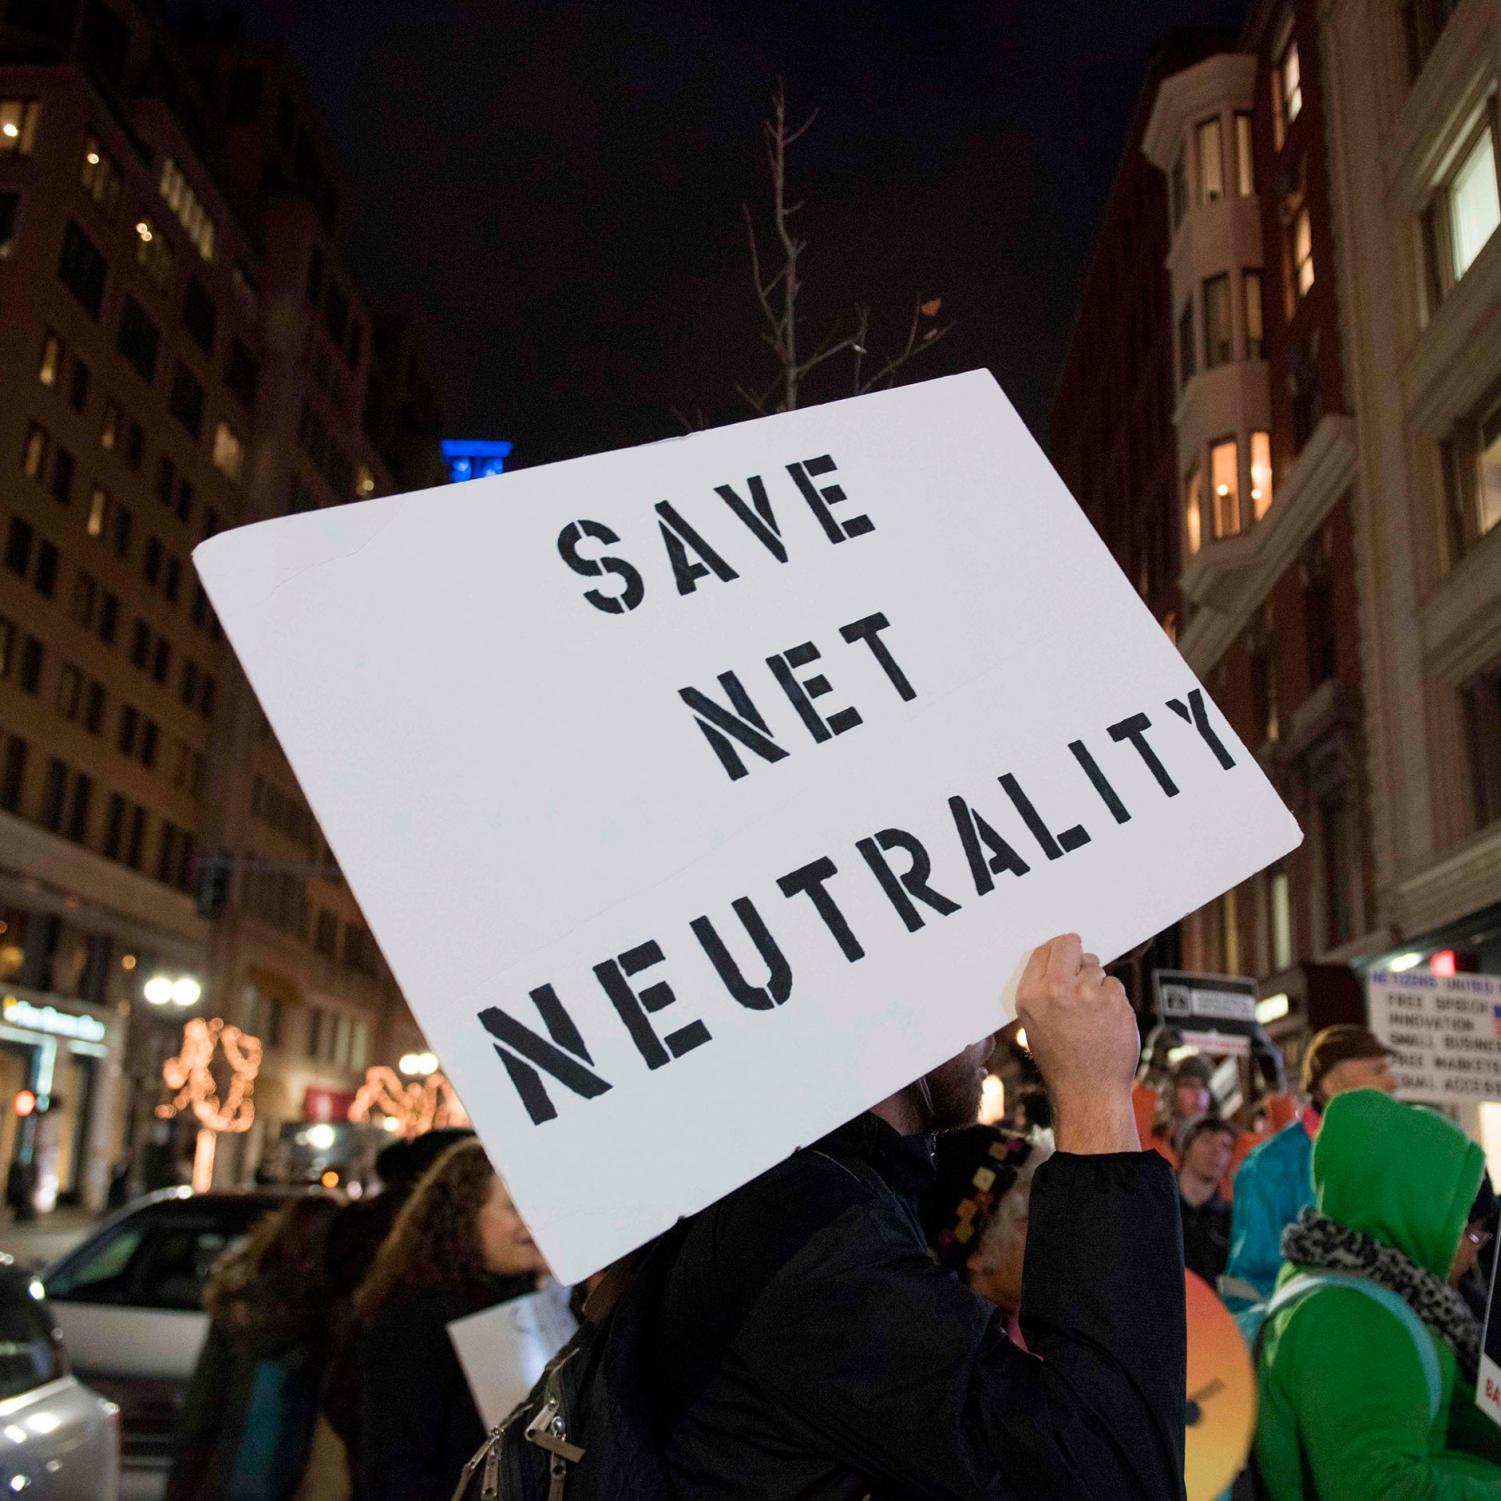 Protester advocating for Net Neutrality to stay in place.